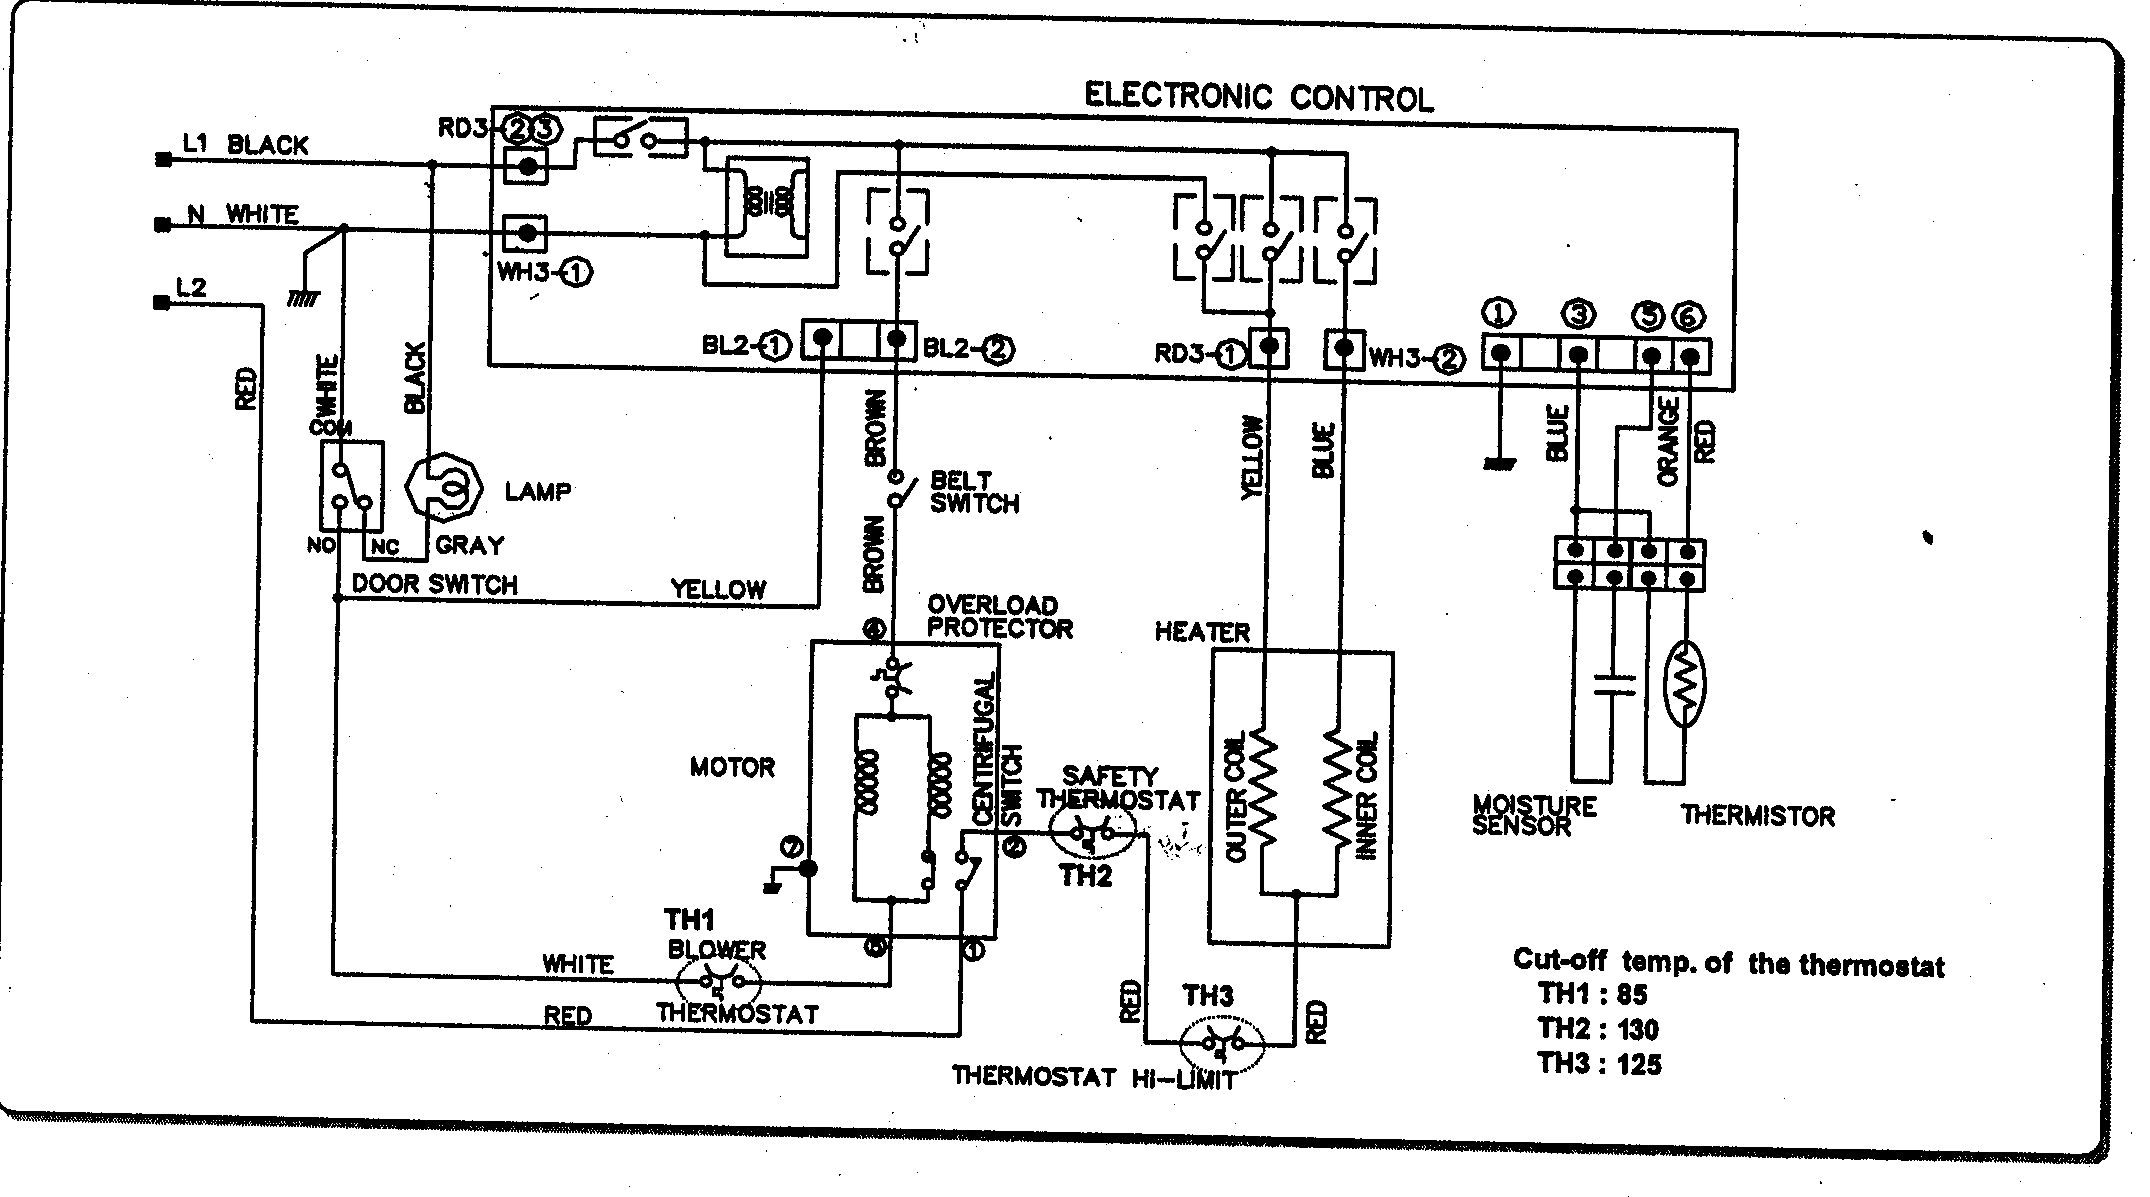 Wiring Diagram For Samsung Dryer